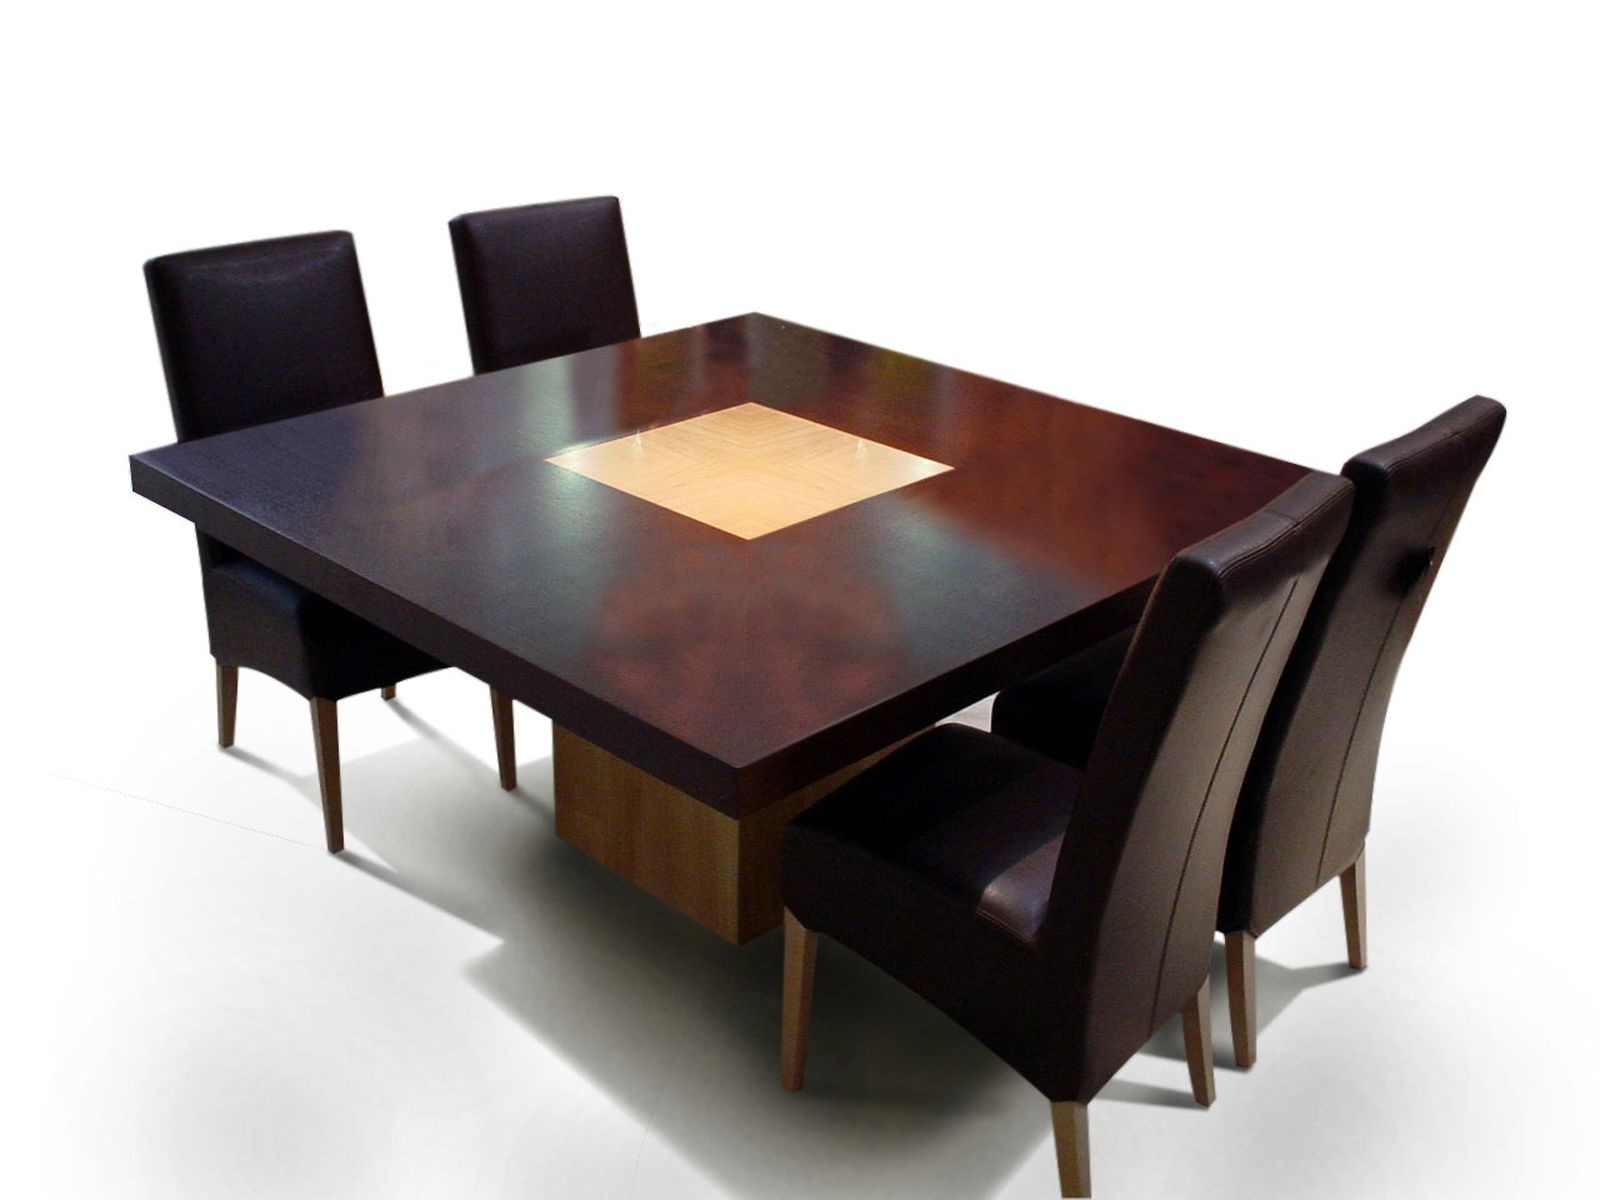 Sketch of Square Dining Table For 4 Dining table, Square